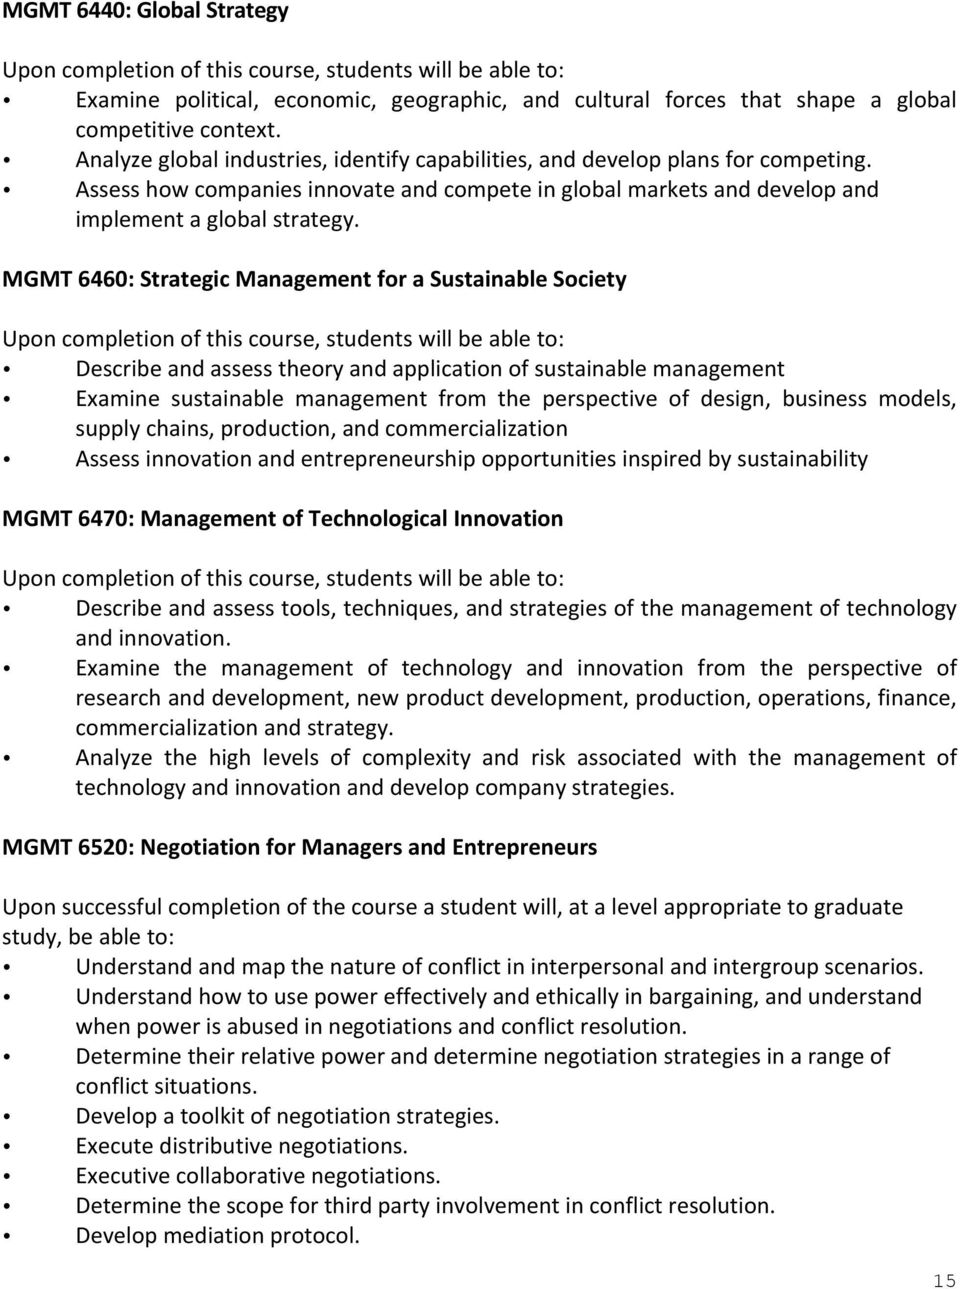 MGMT 6460: Strategic Management for a Sustainable Society Describe and assess theory and application of sustainable management Examine sustainable management from the perspective of design, business